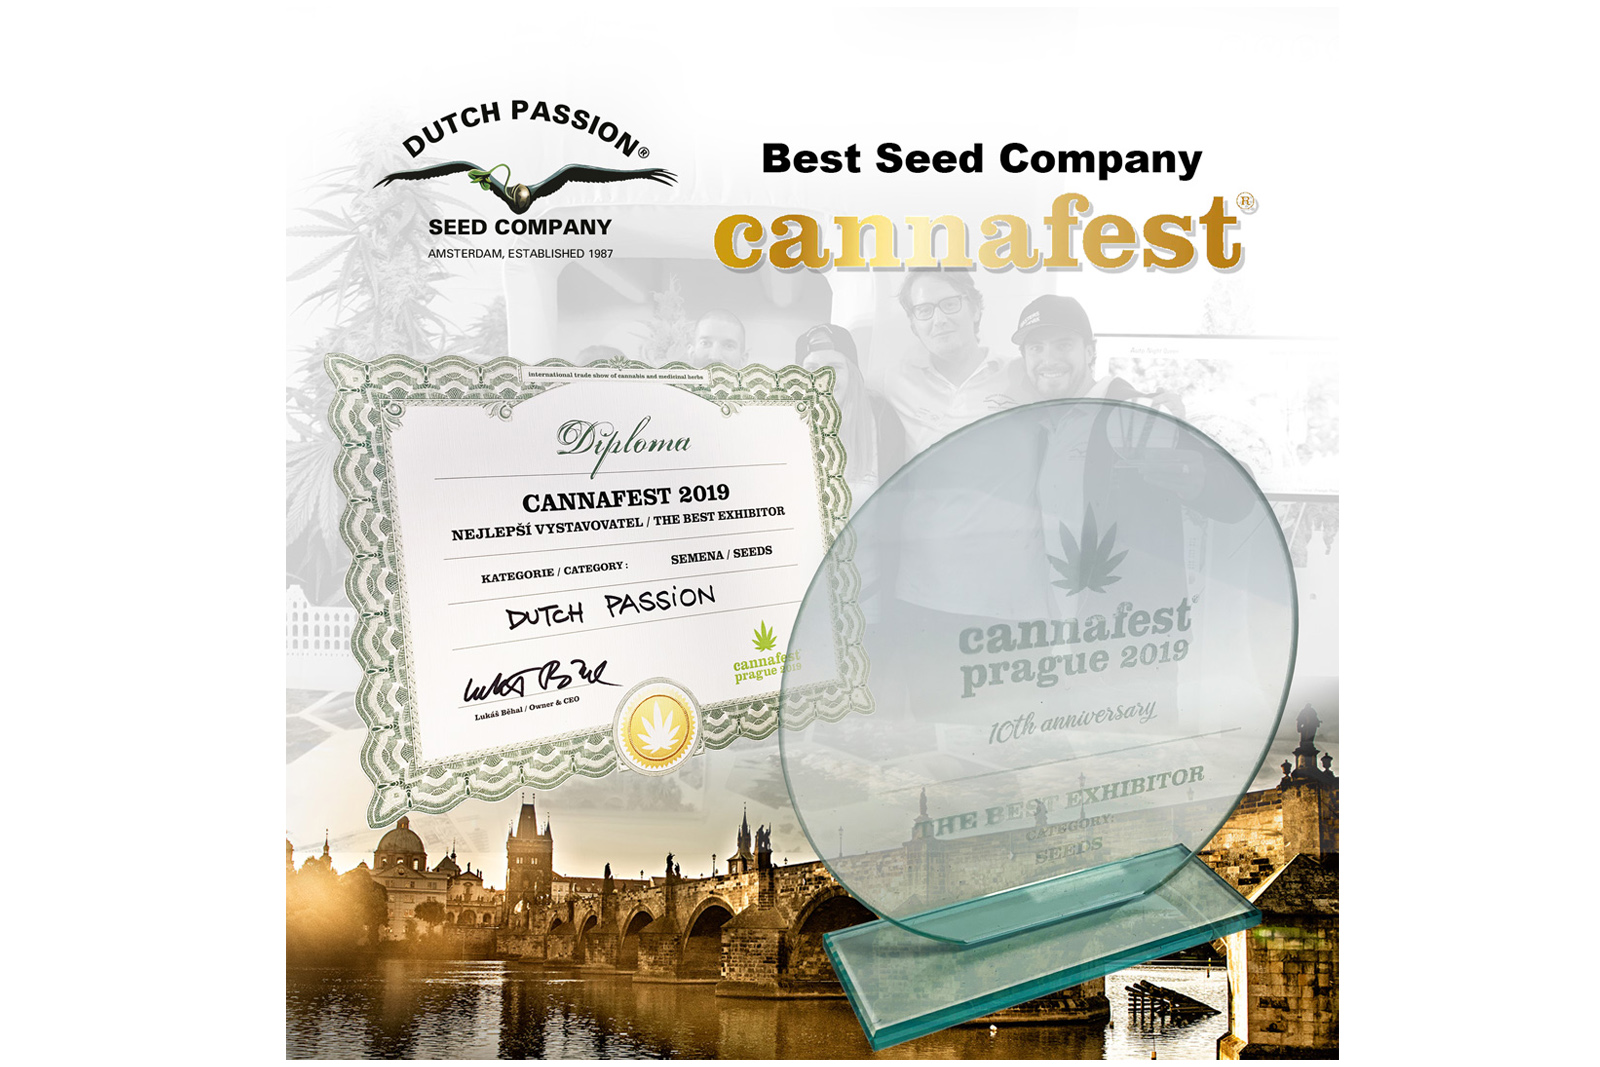 Dutch Passion awarded 'Best Seedbank' at Cannafest 2019